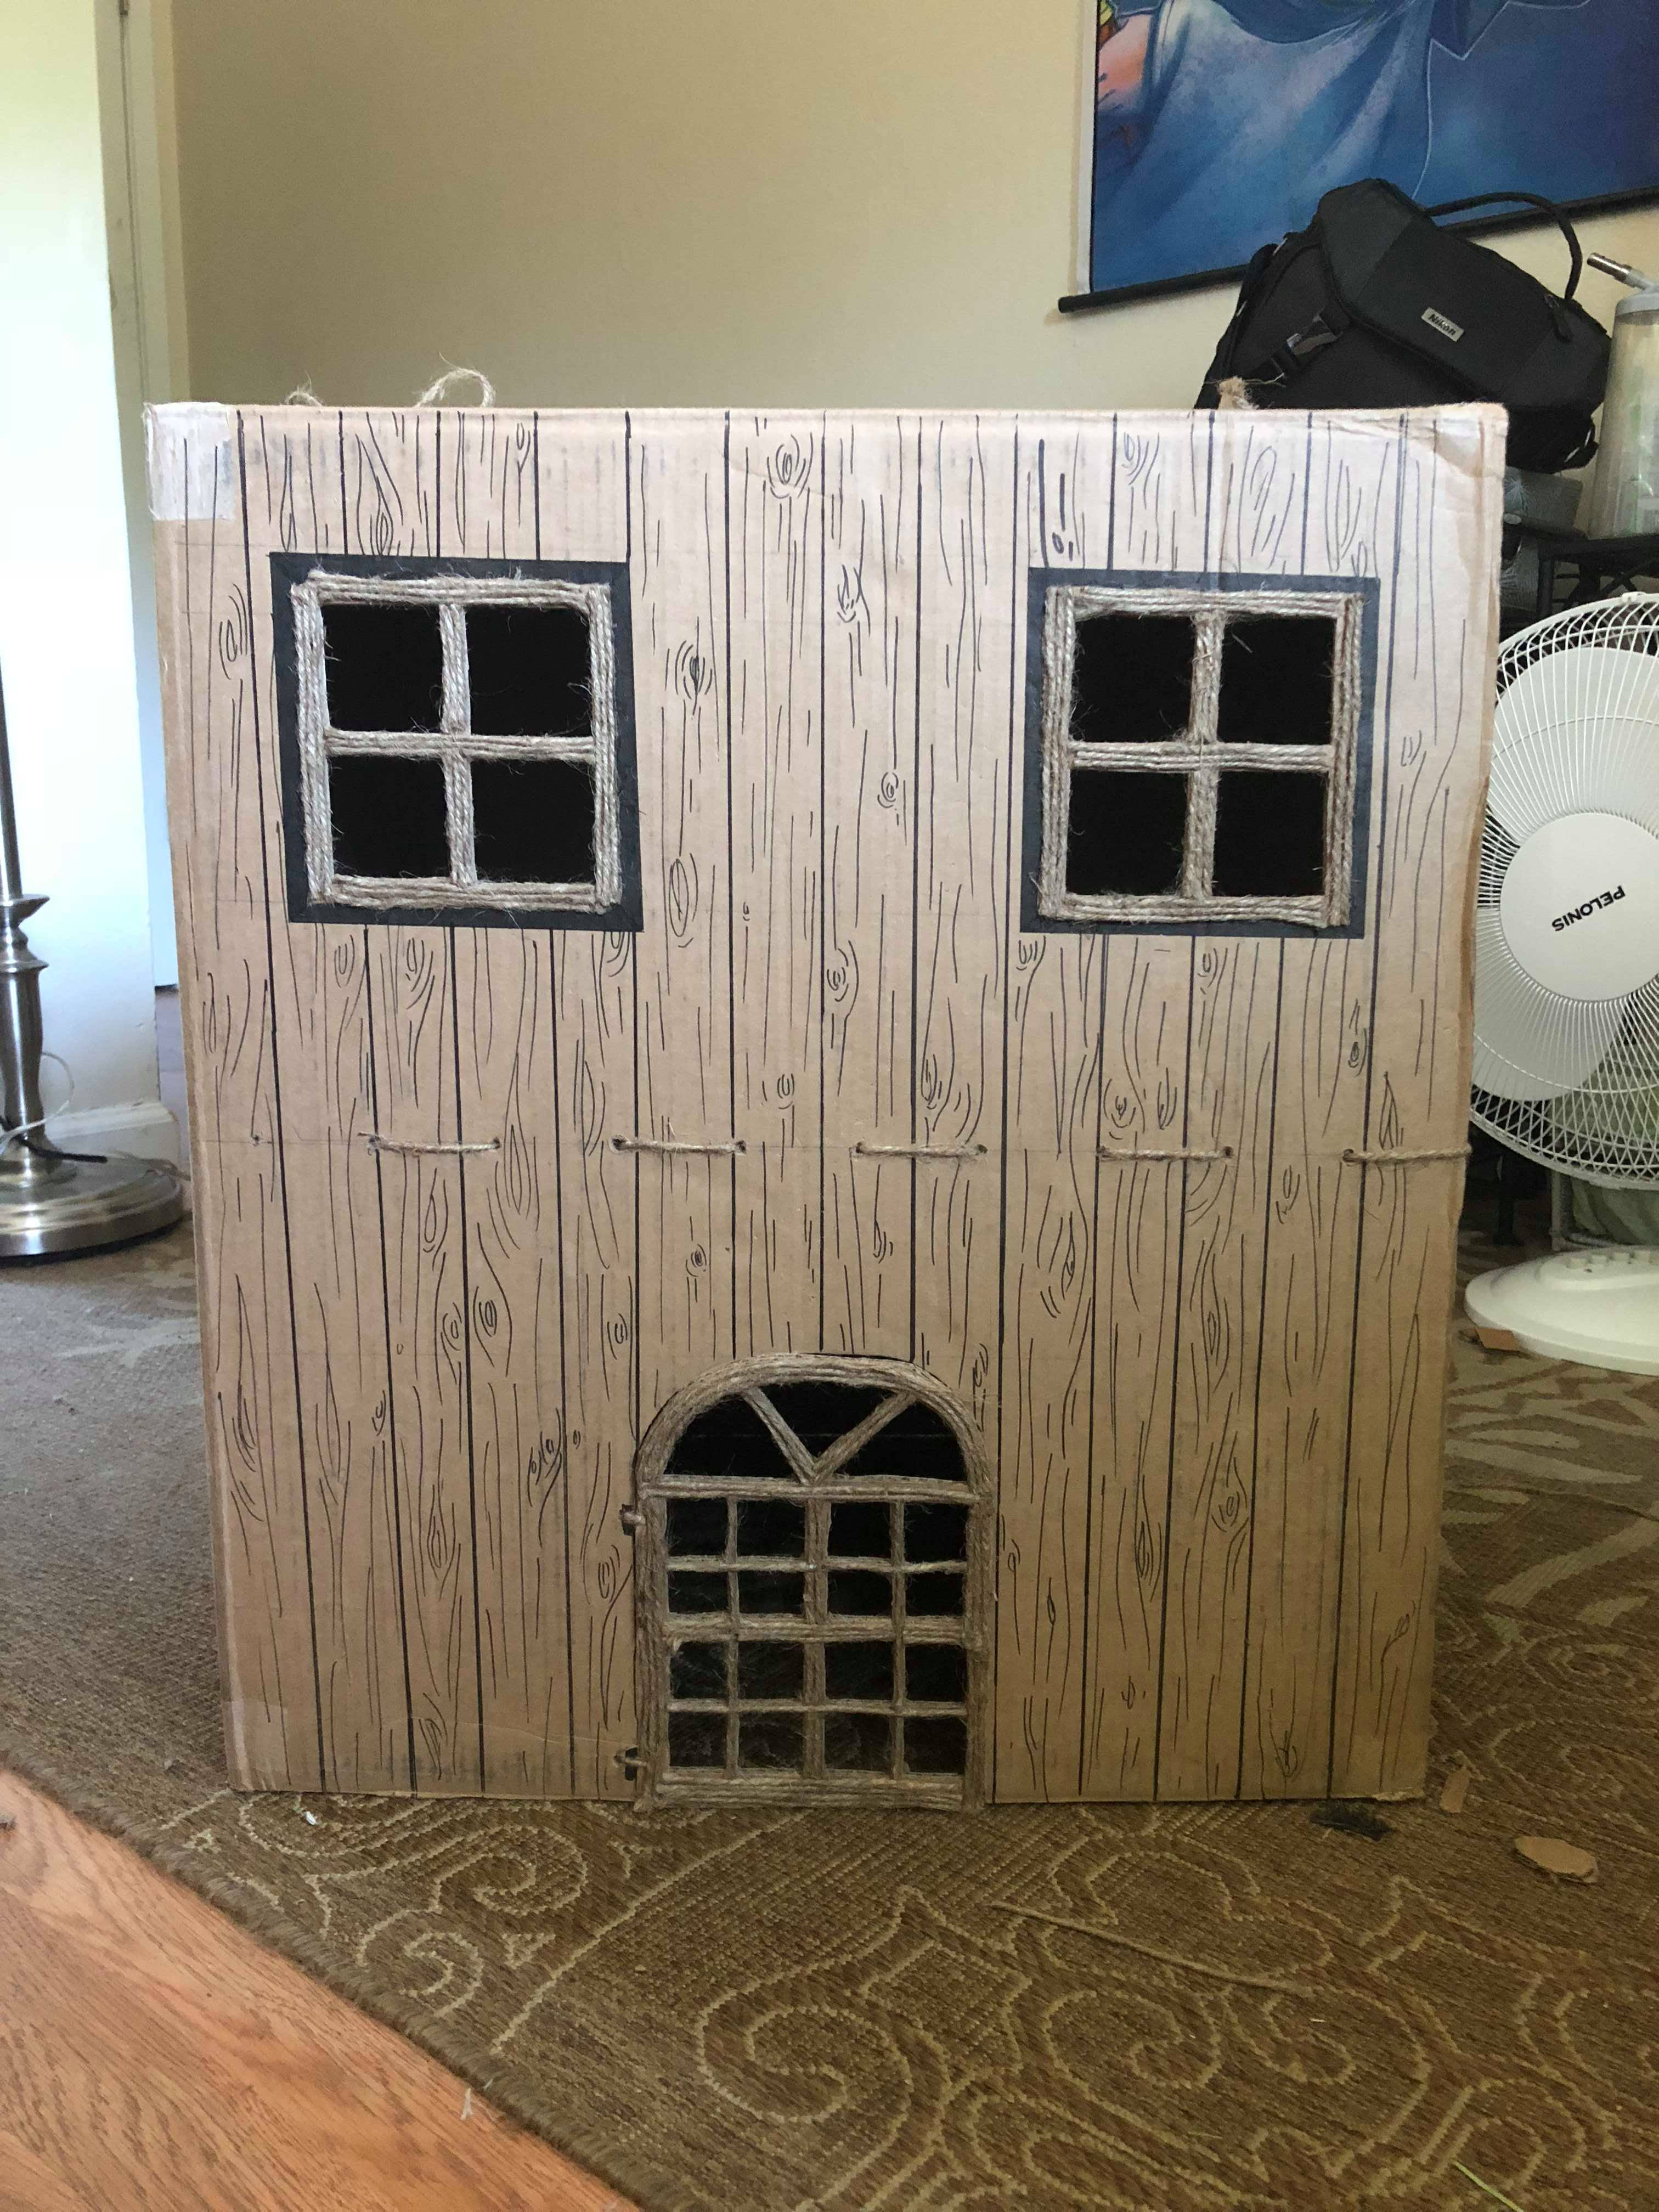 Picture of Cardboard Bunny House